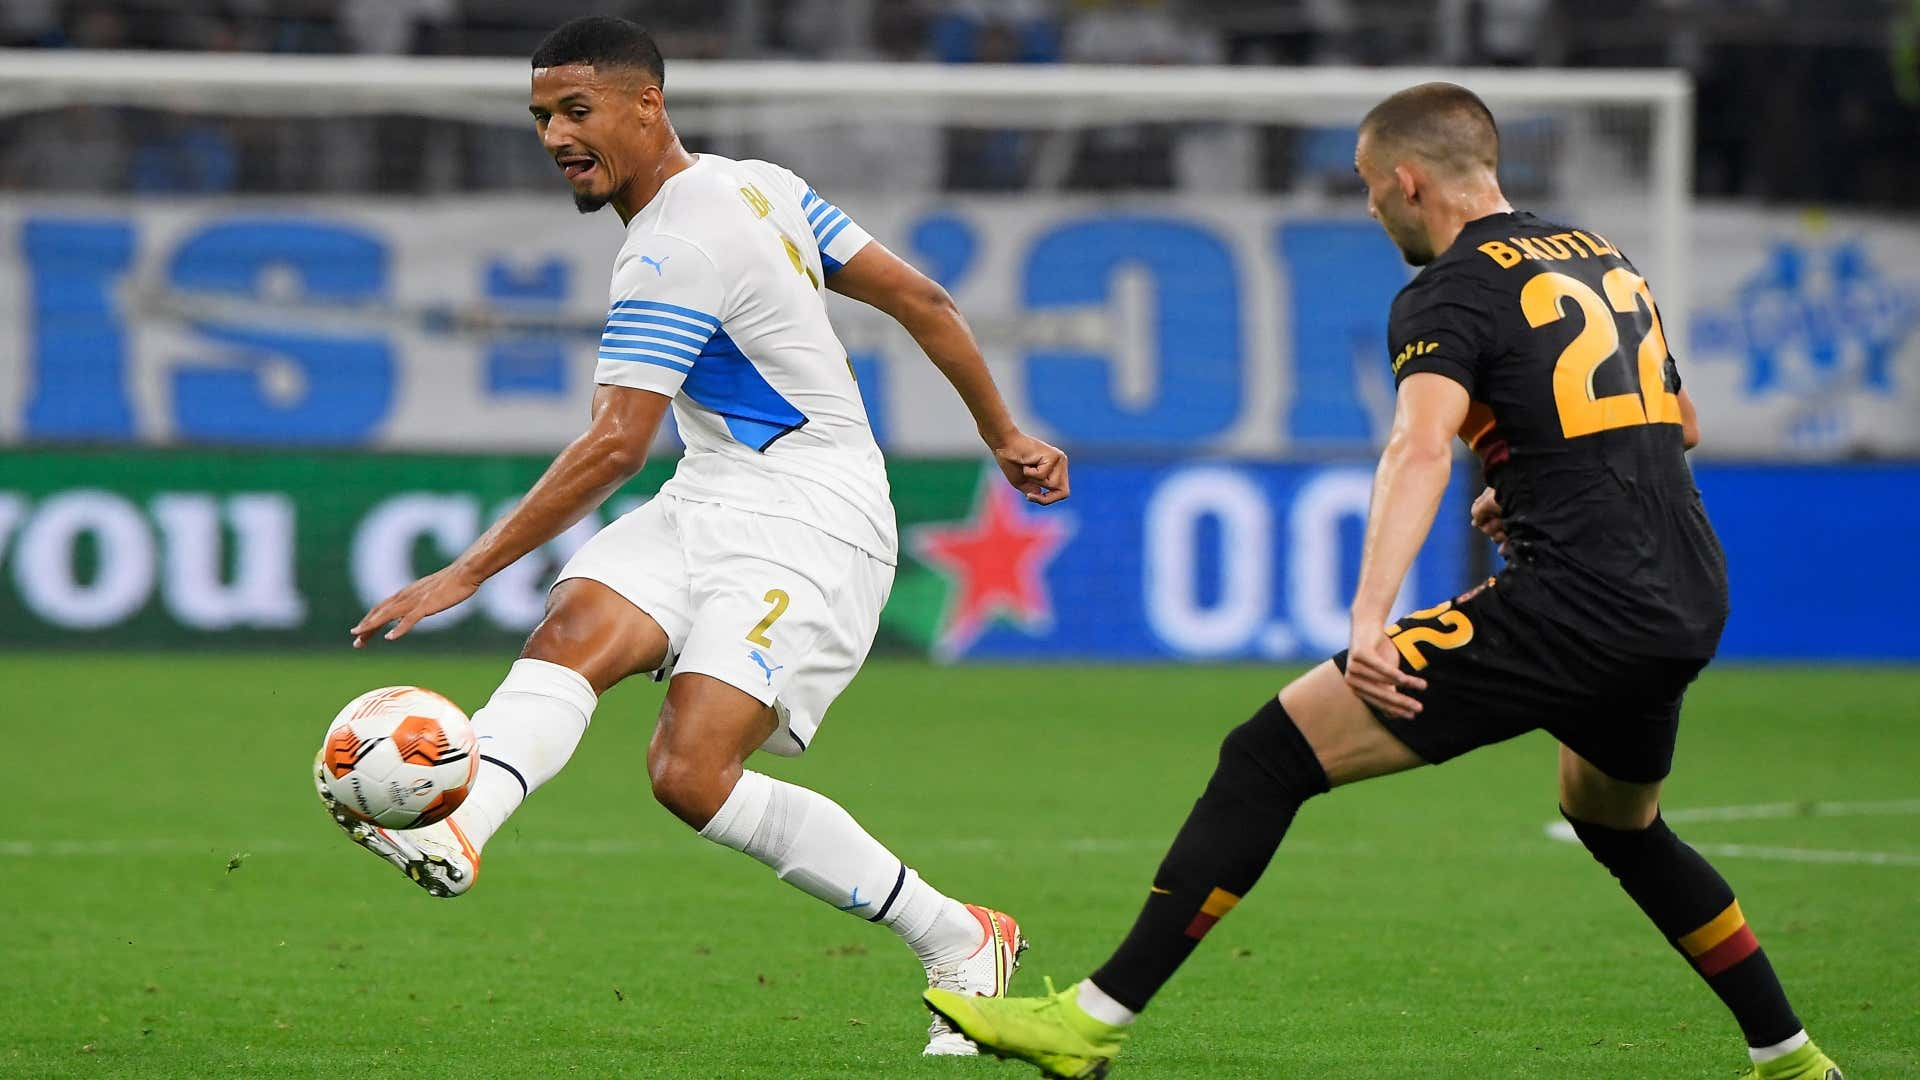 Saliba judges his start to the season at OM and with the France Espoirs team